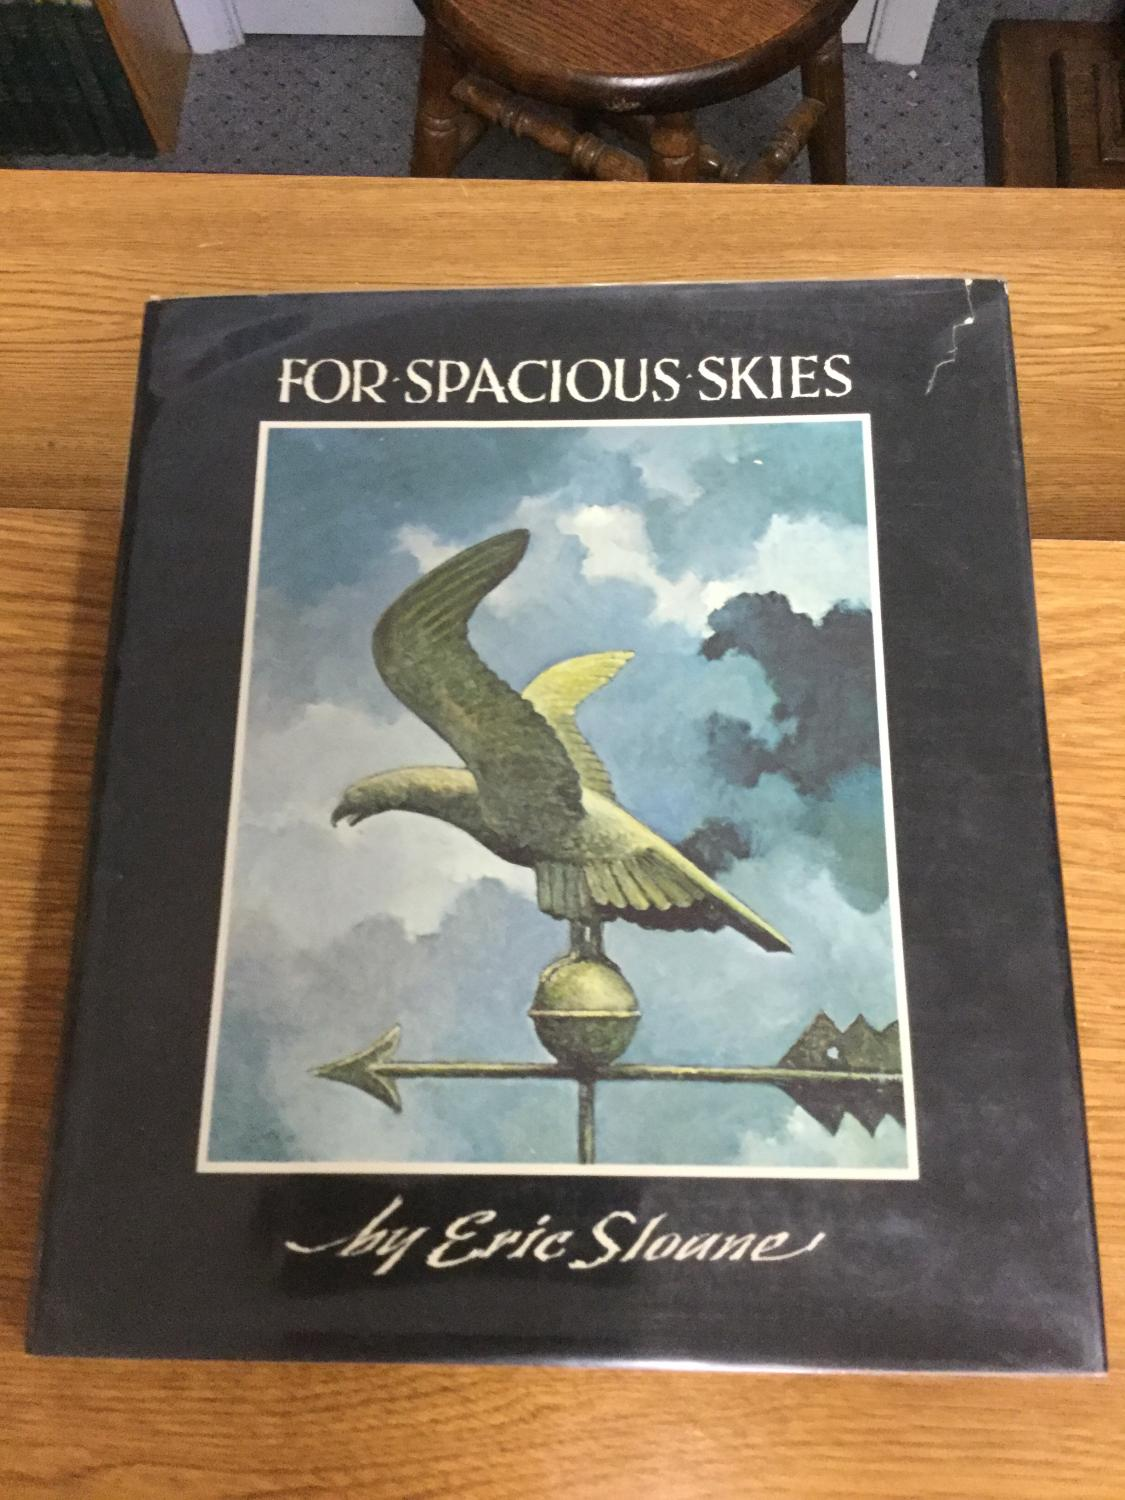 For_Spacious_Skies_A_Meteorological_Sketchbook_of_American_Weather_Sloane_Eric_Near_Fine_Hardcover